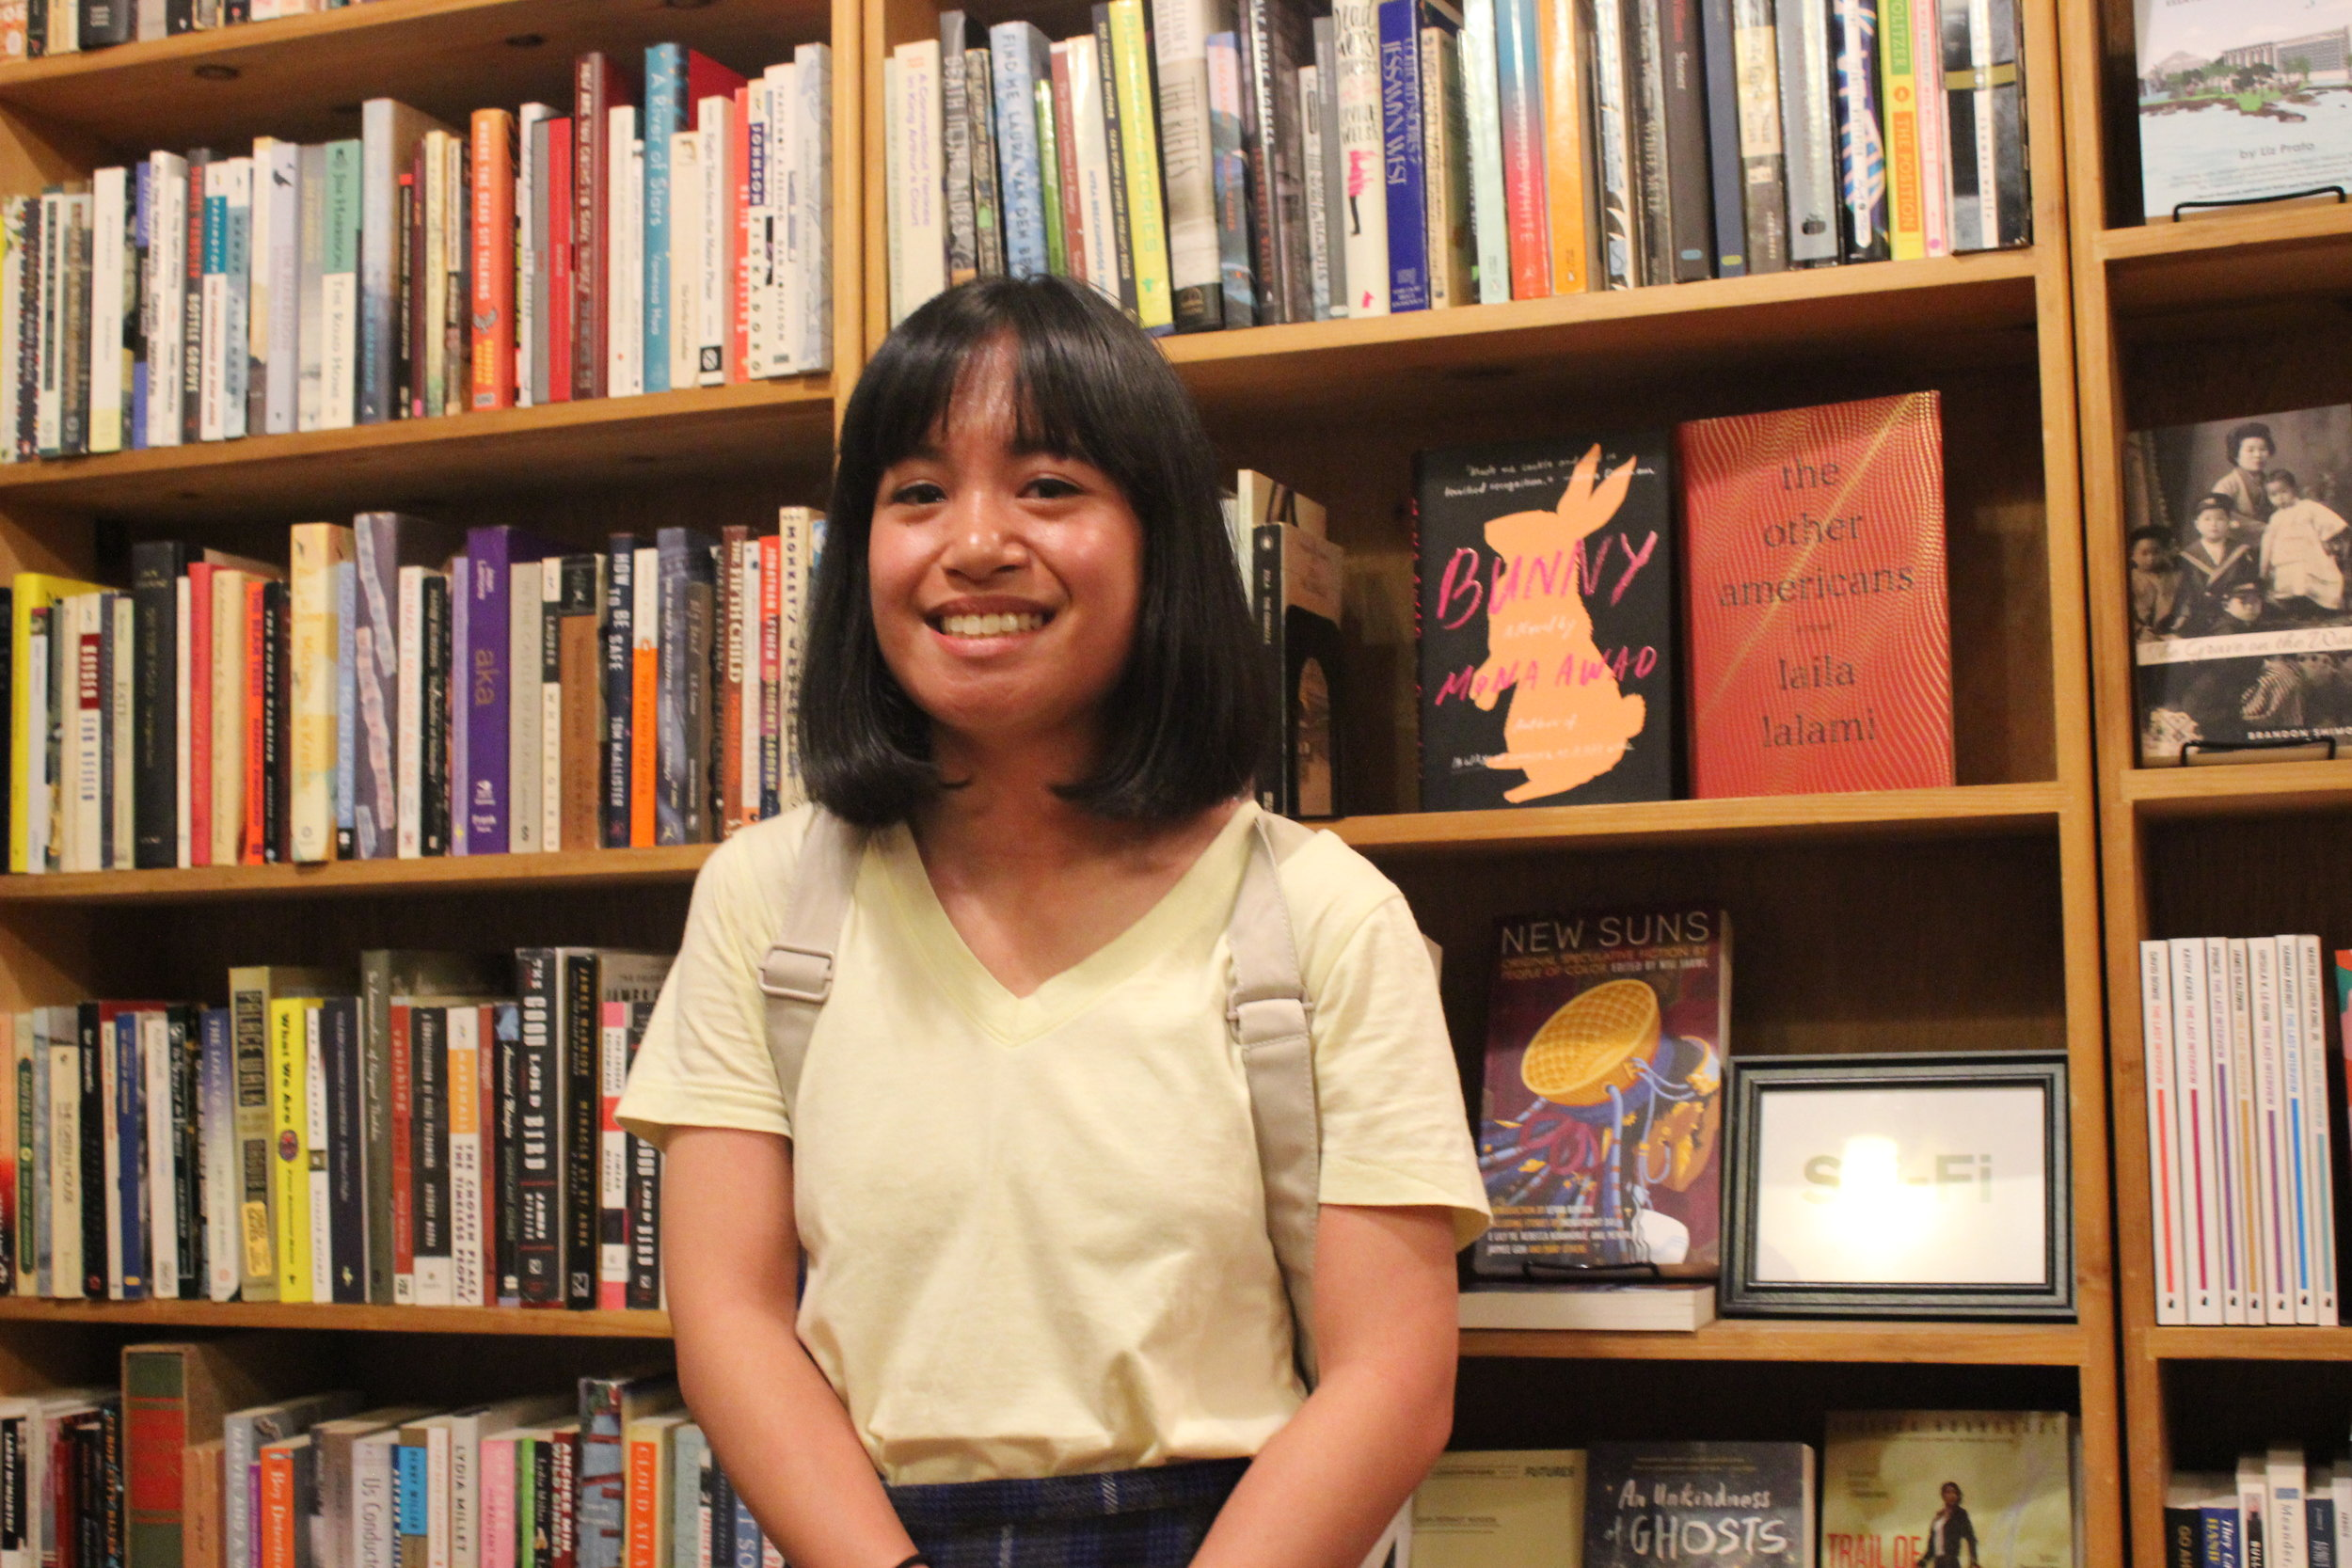 Geraldine Jorge reads Poetry at Wolfman books on August 14th 2019 in a reading Hosted by Sophia Dahin